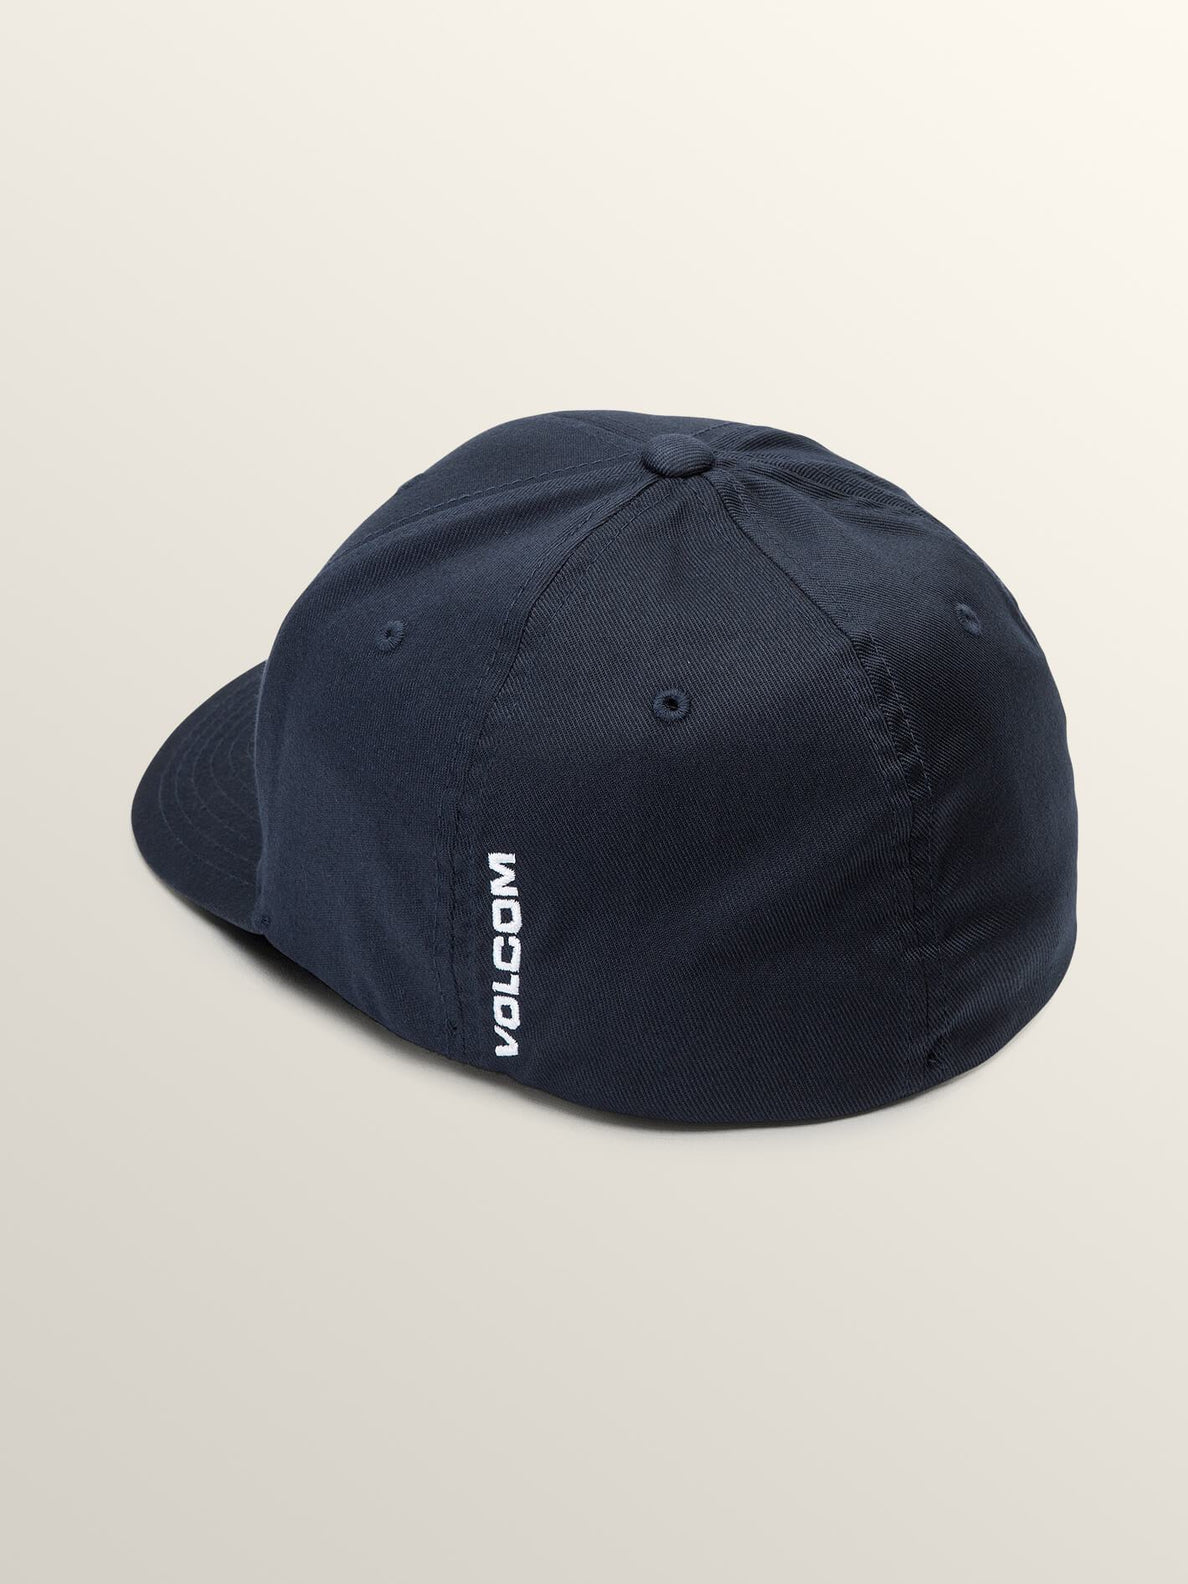 Full Stone Xfit Hat In Navy, Alternate View